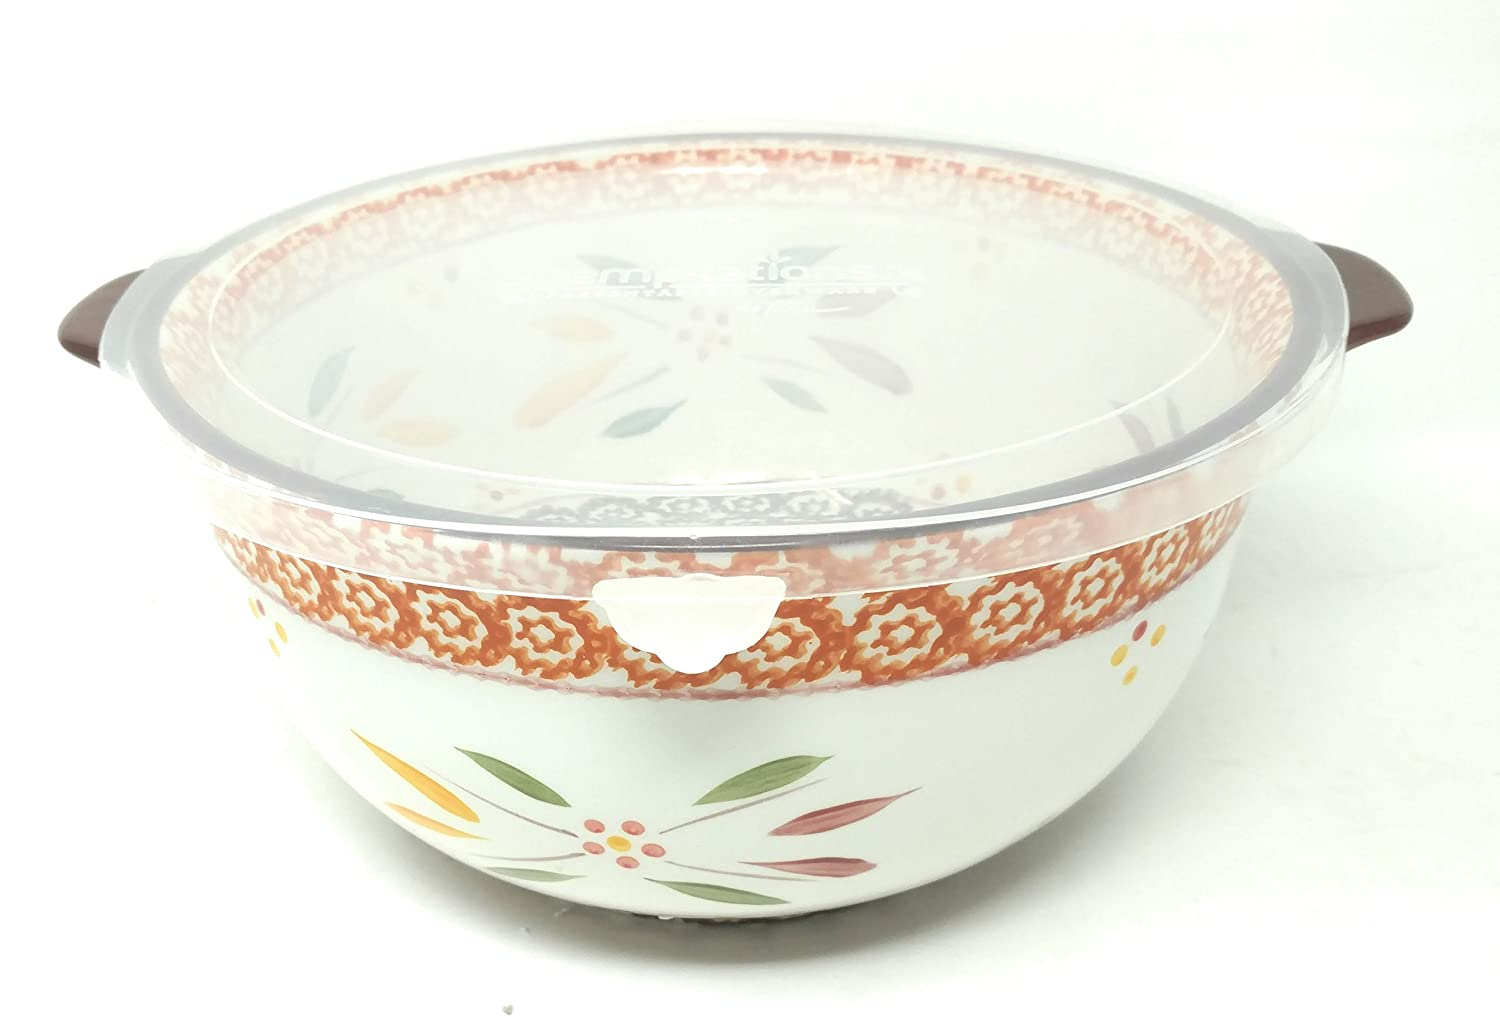 Temp-tations 4 Qt Mixing or Serving Bowl w/Plastic Cover (Also Cake Dome Replacement) (Old World Fallfetti)